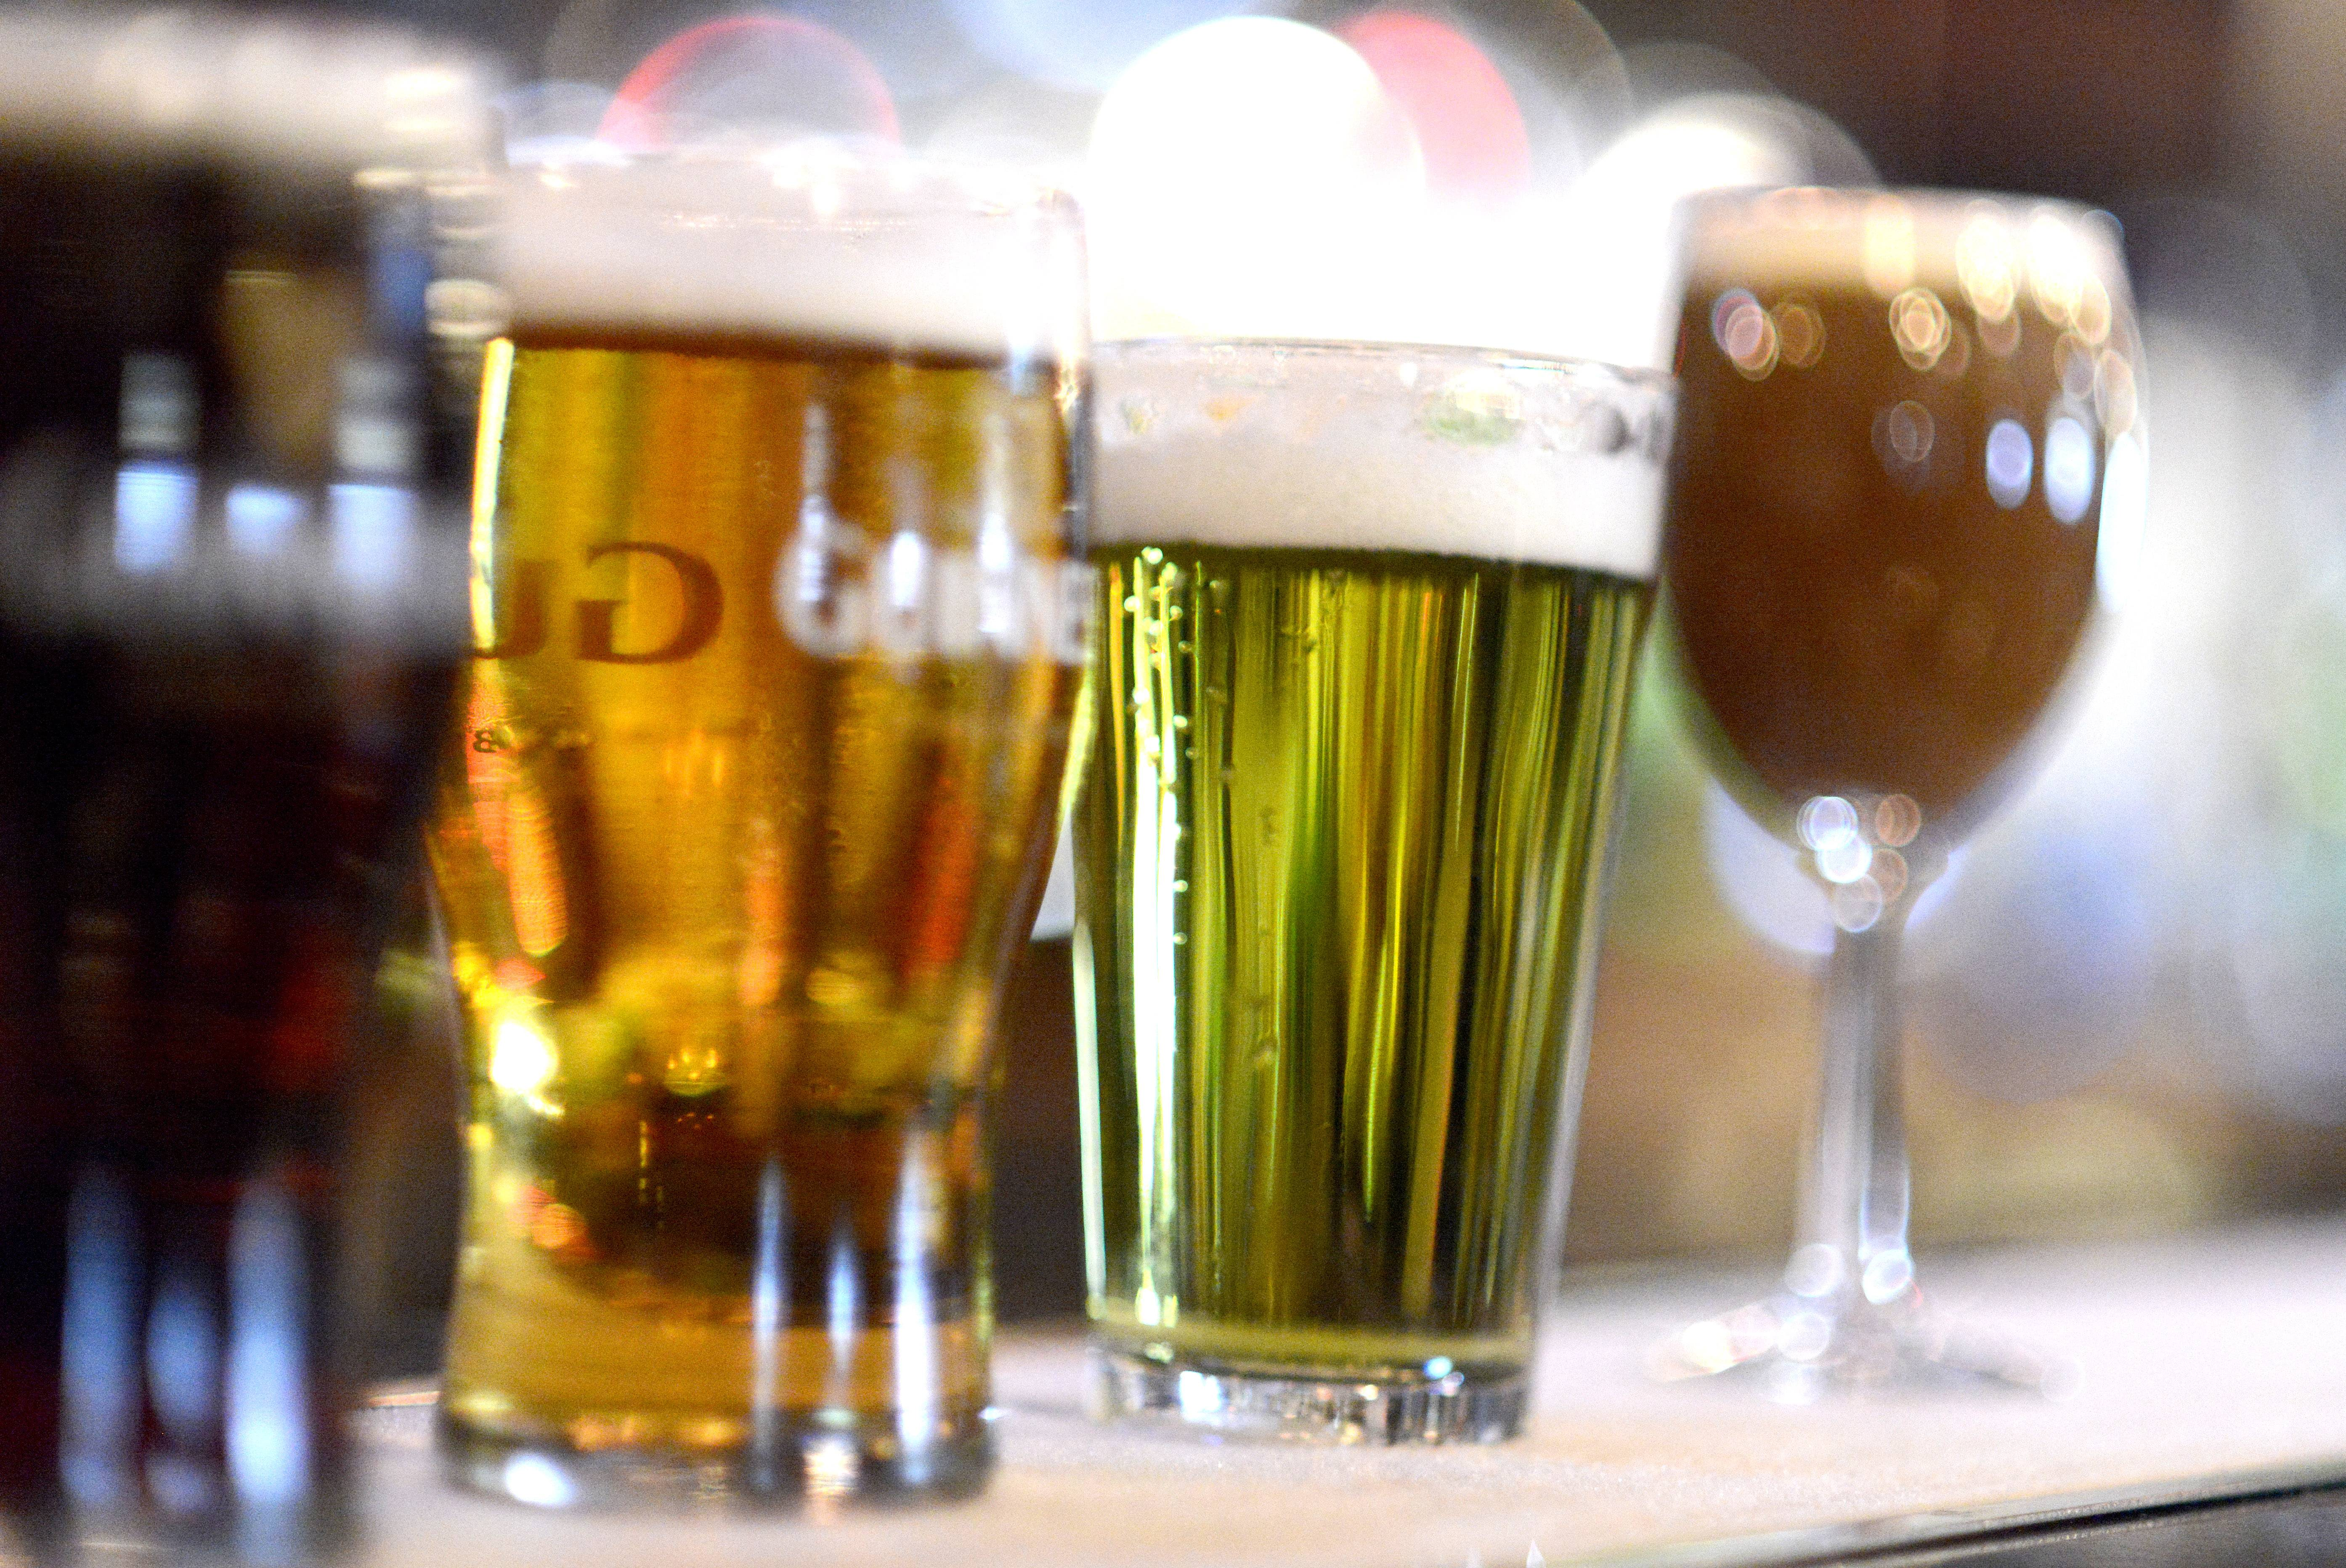 A variety of well-known Irish beers, including one dyed green, are available at Claddagh Irish Pub in Geneva.